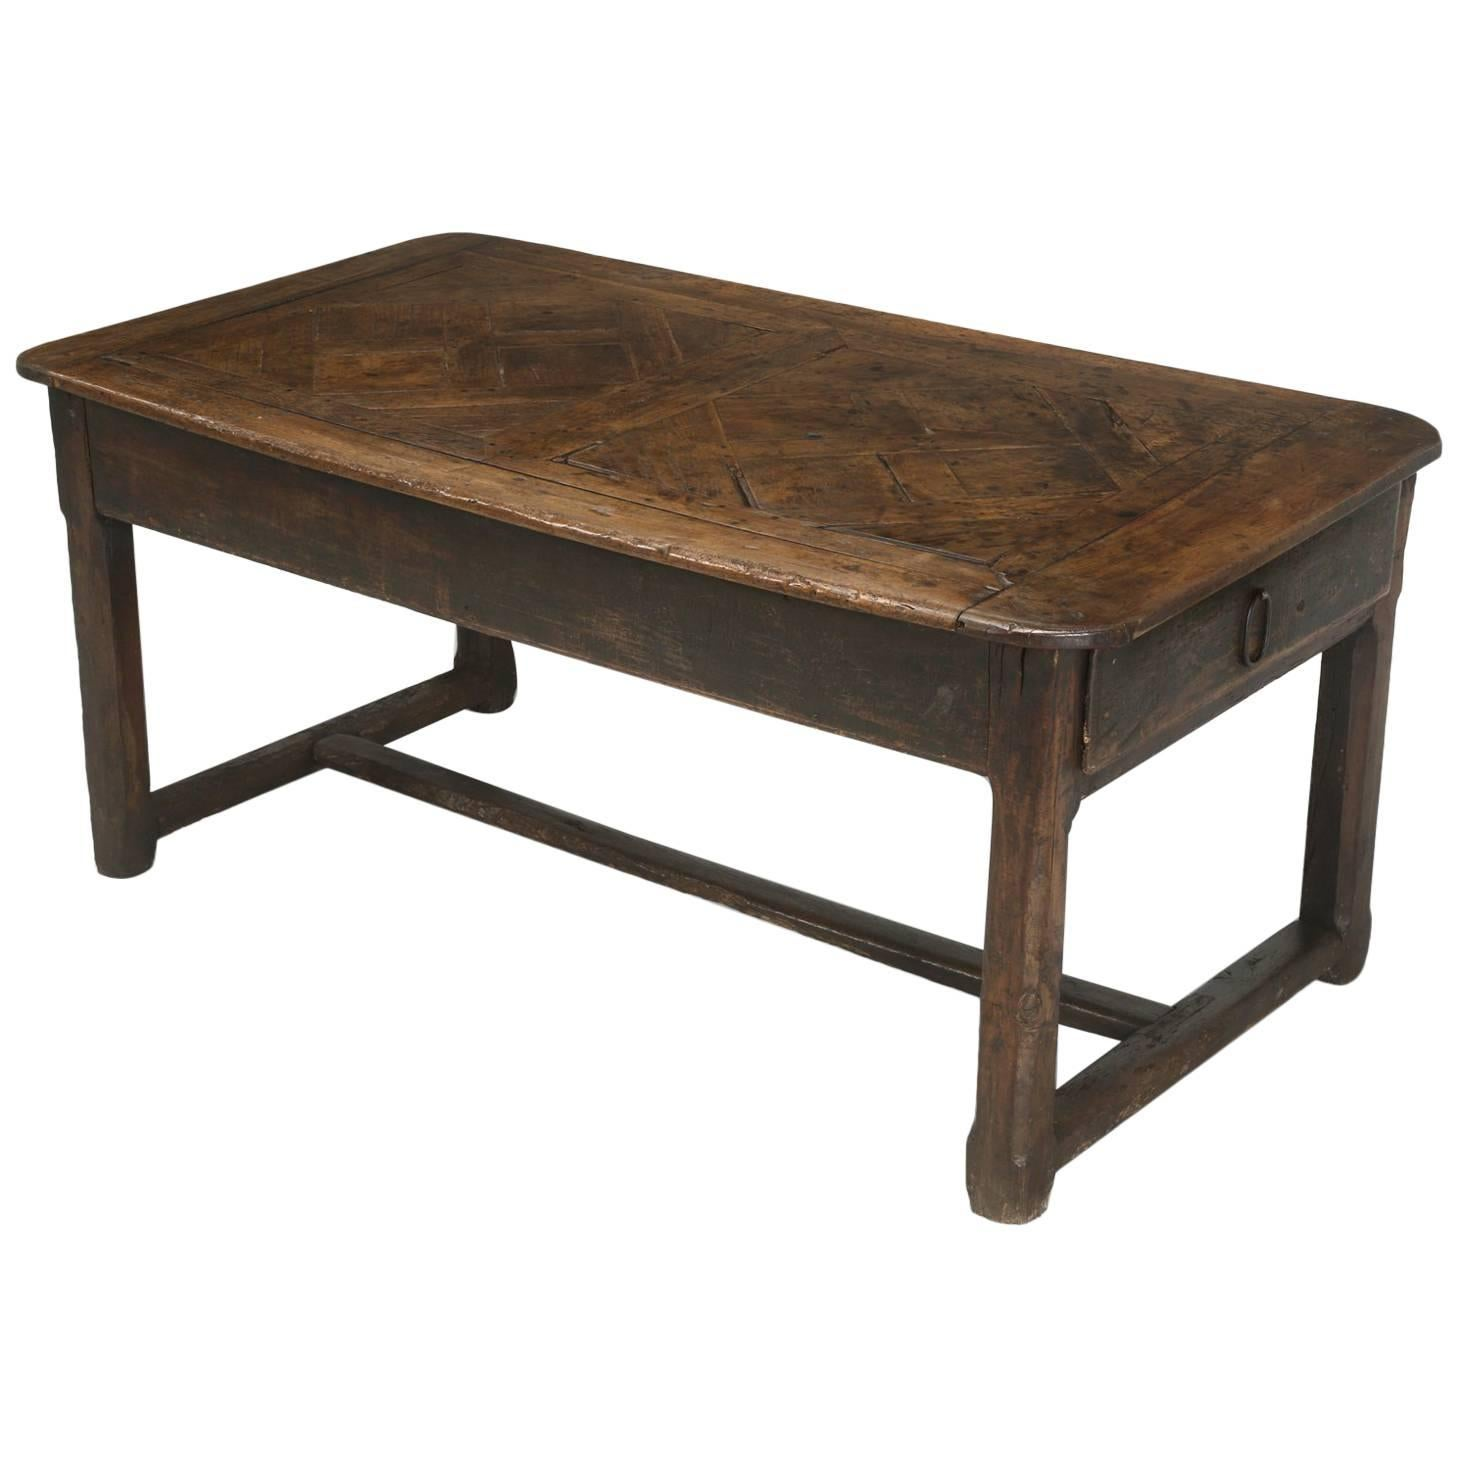 Antique French Farm Table With Drawer, Circa 1700 1